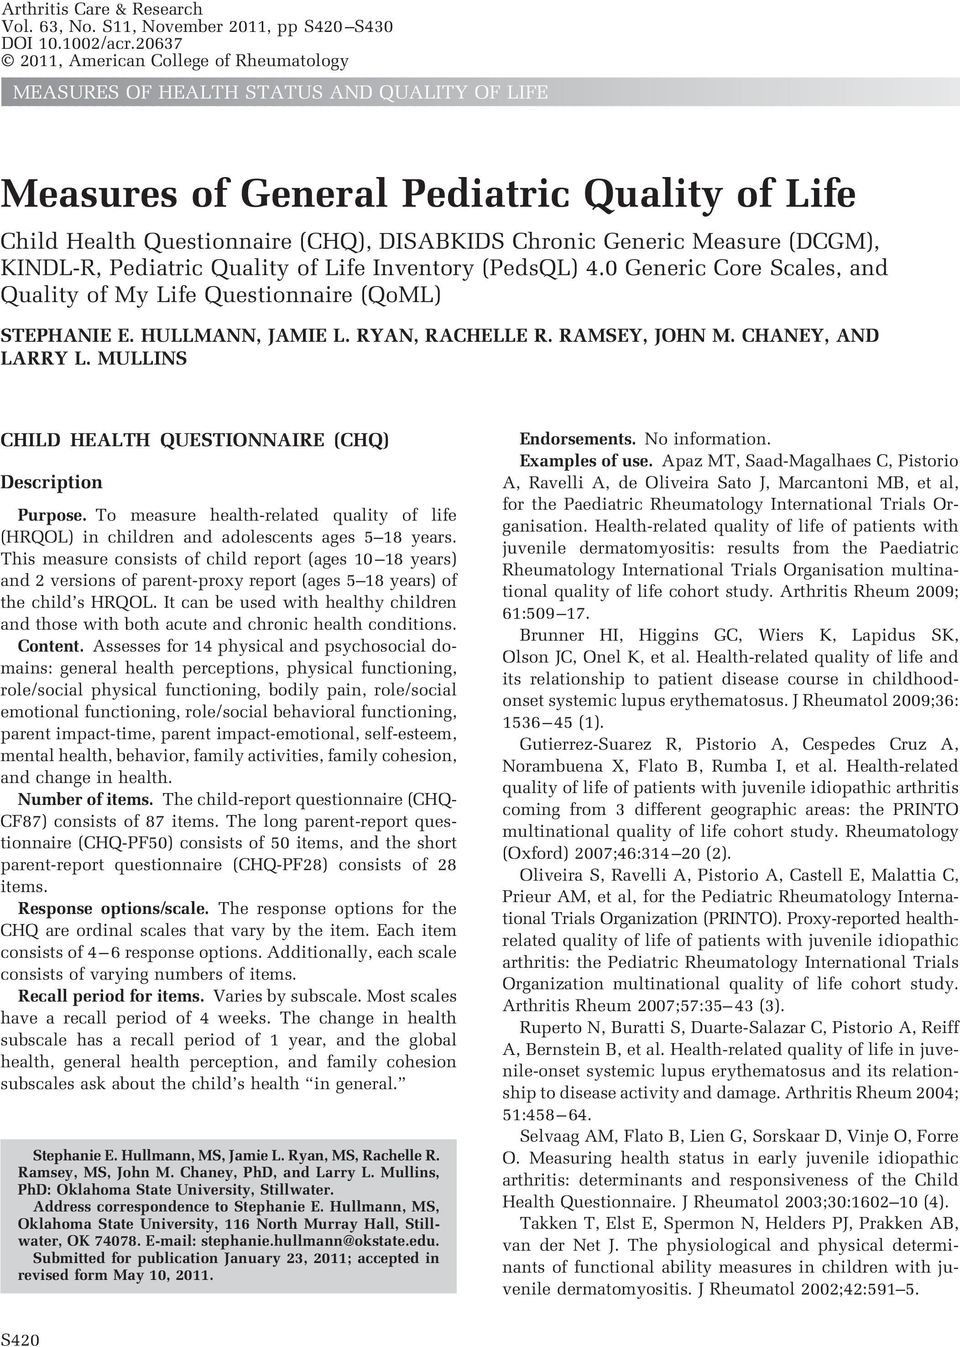 Measure (DCGM), KINDL-R, Pediatric Quality of Life Inventory (PedsQL) 4.0 Generic Core Scales, and Quality of My Life Questionnaire (QoML) STEPHANIE E. HULLMANN, JAMIE L. RYAN, RACHELLE R.